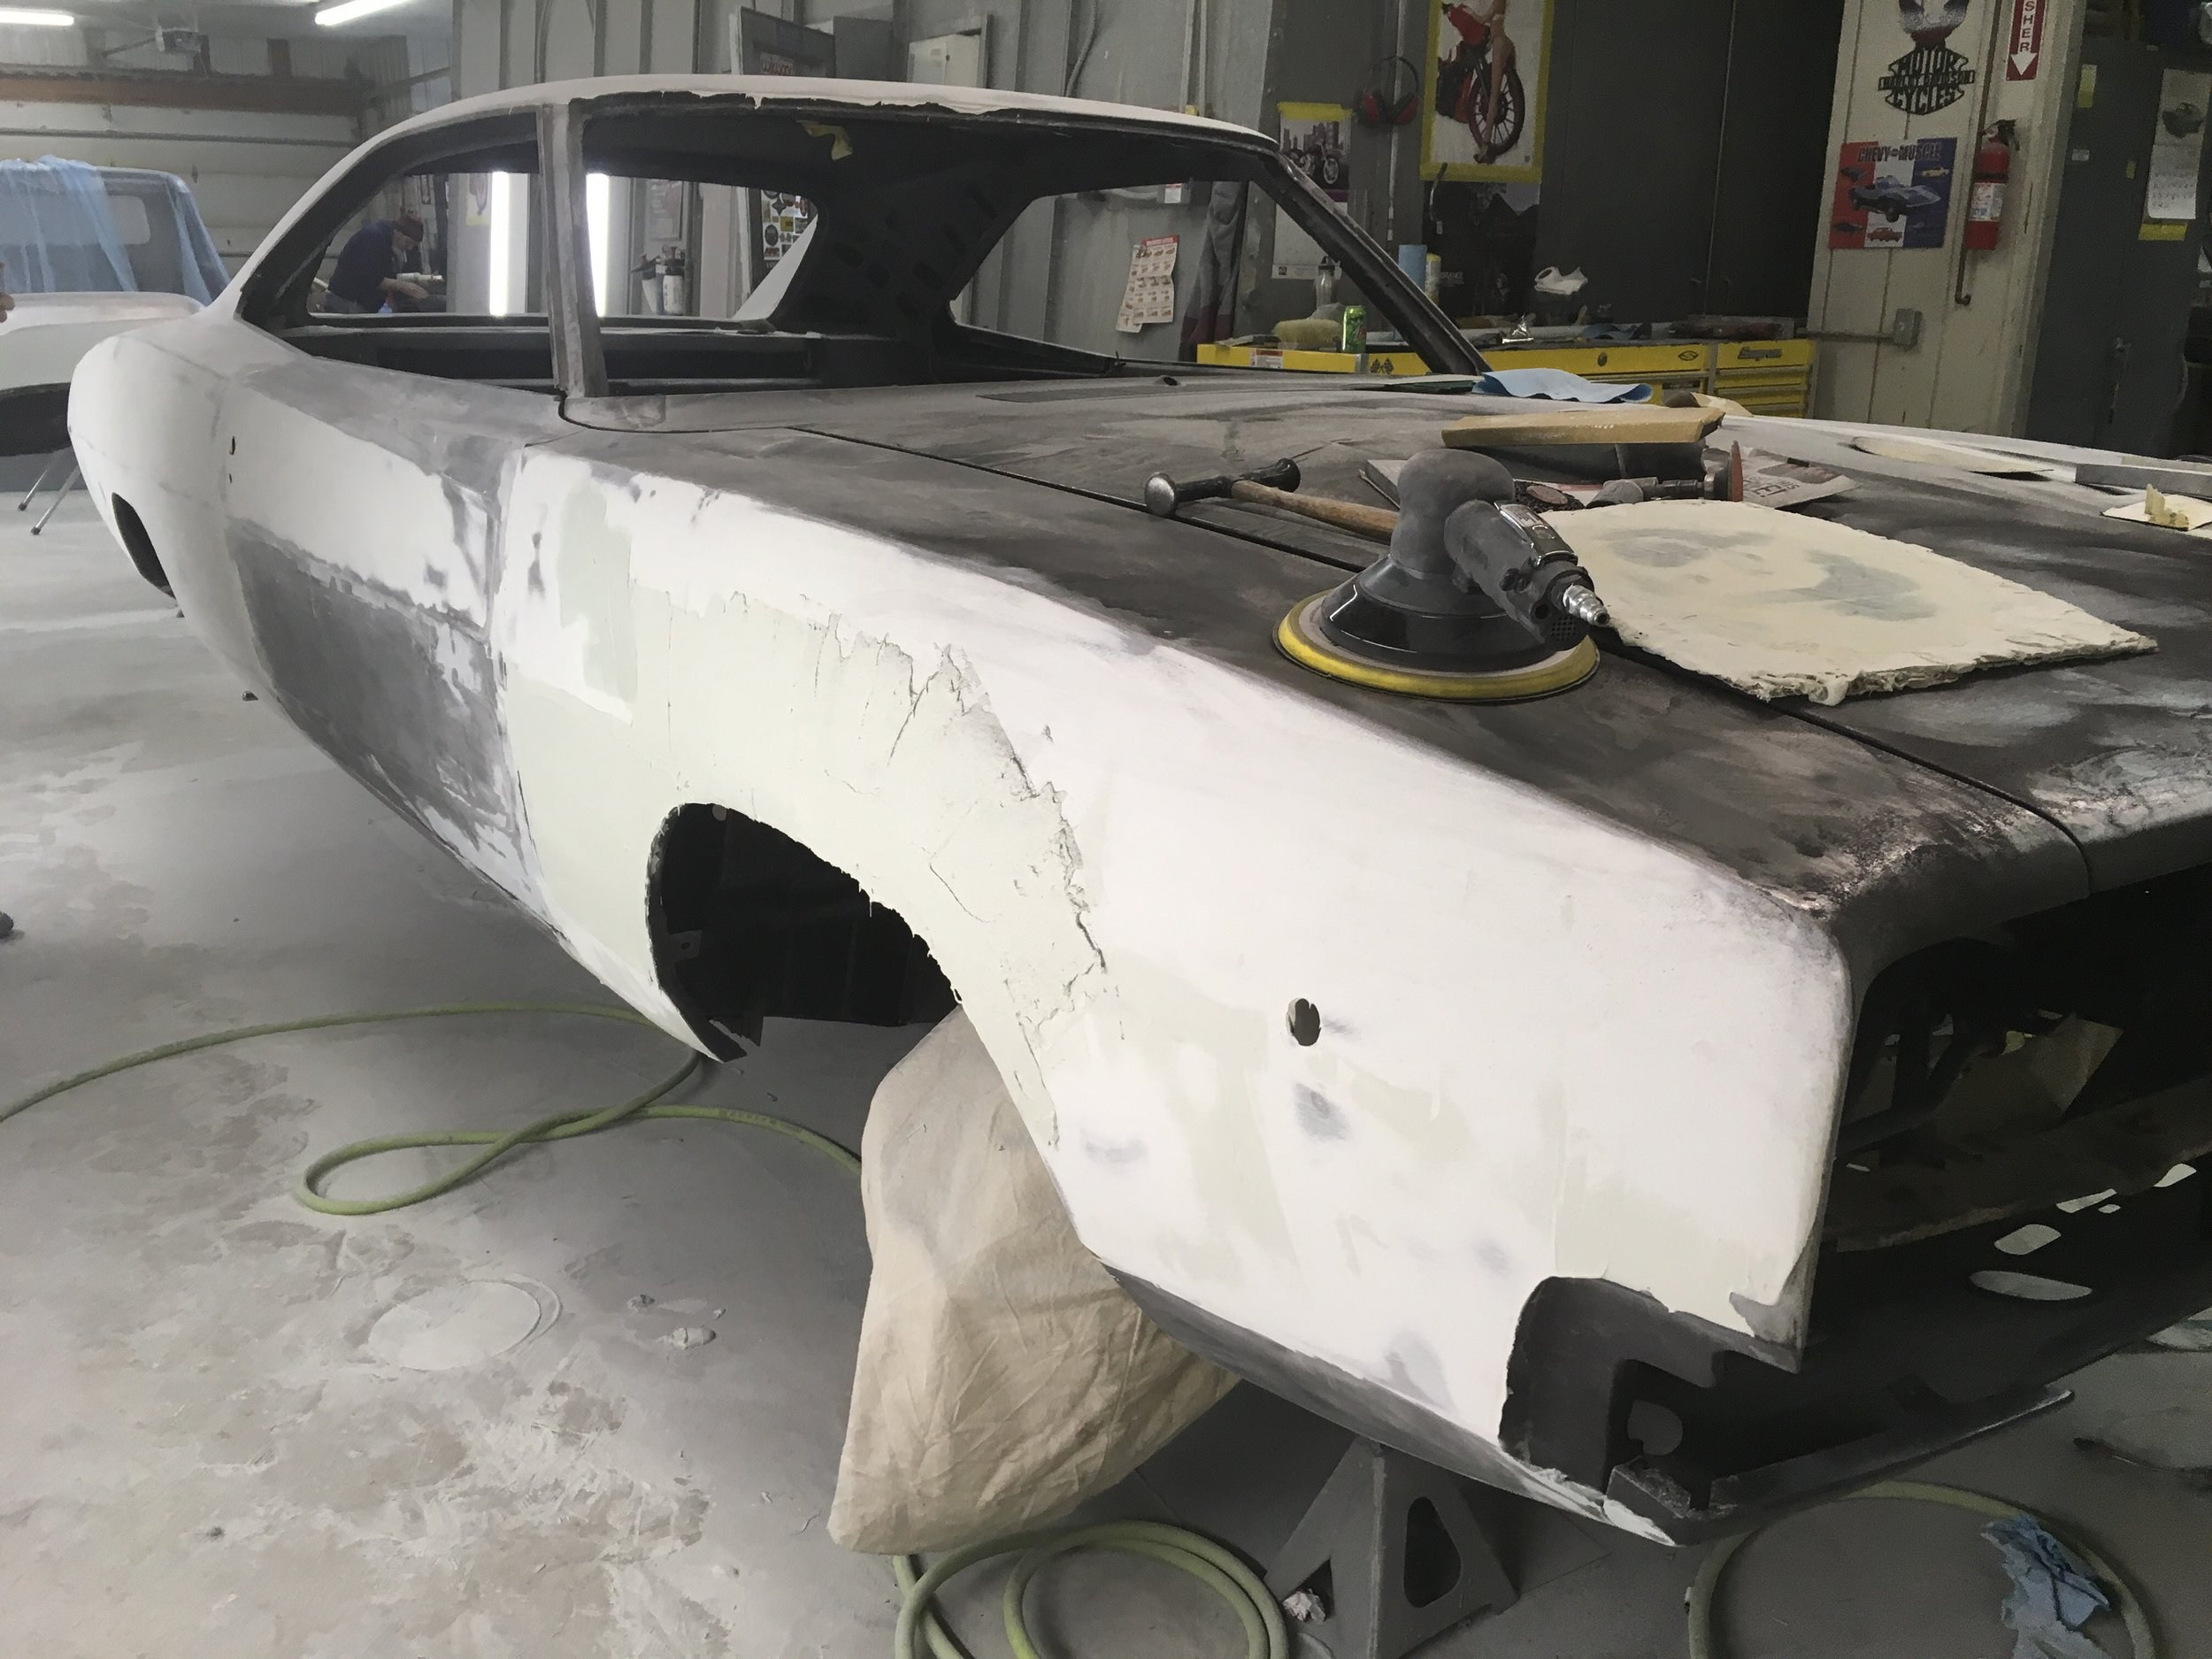 Sanding body work today on 68 Charger.